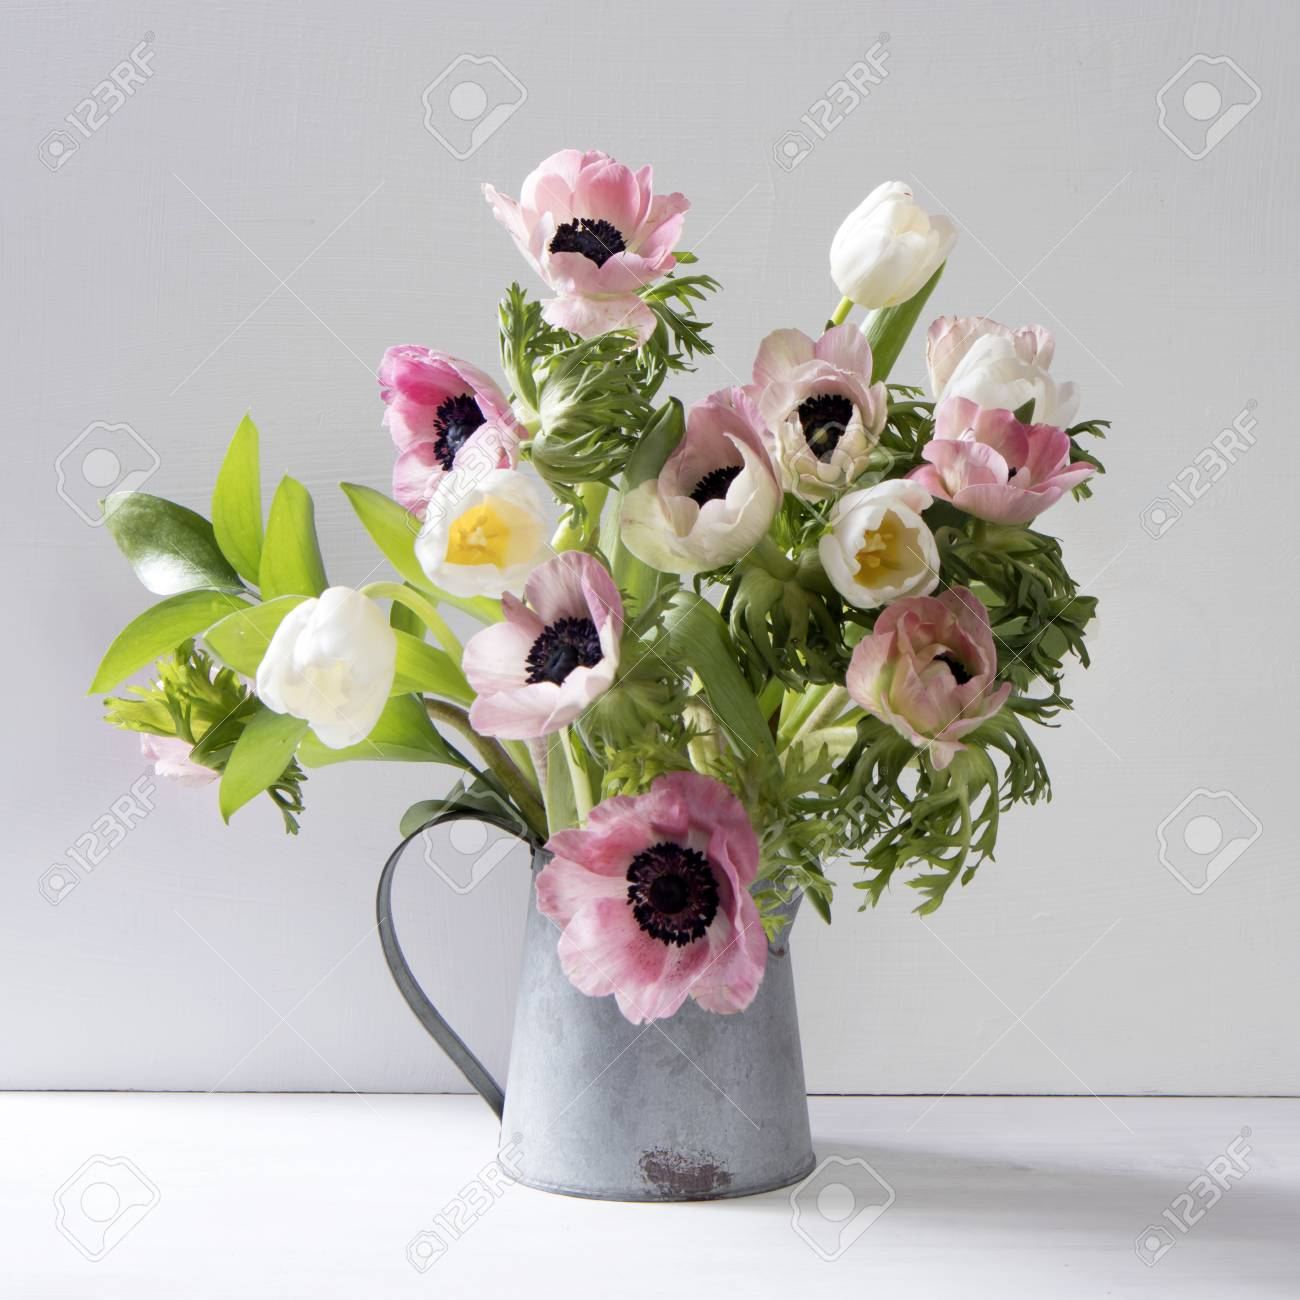 Wedding Bouquet Of Anemones And Tulips With Ruscus In A Jug On ...